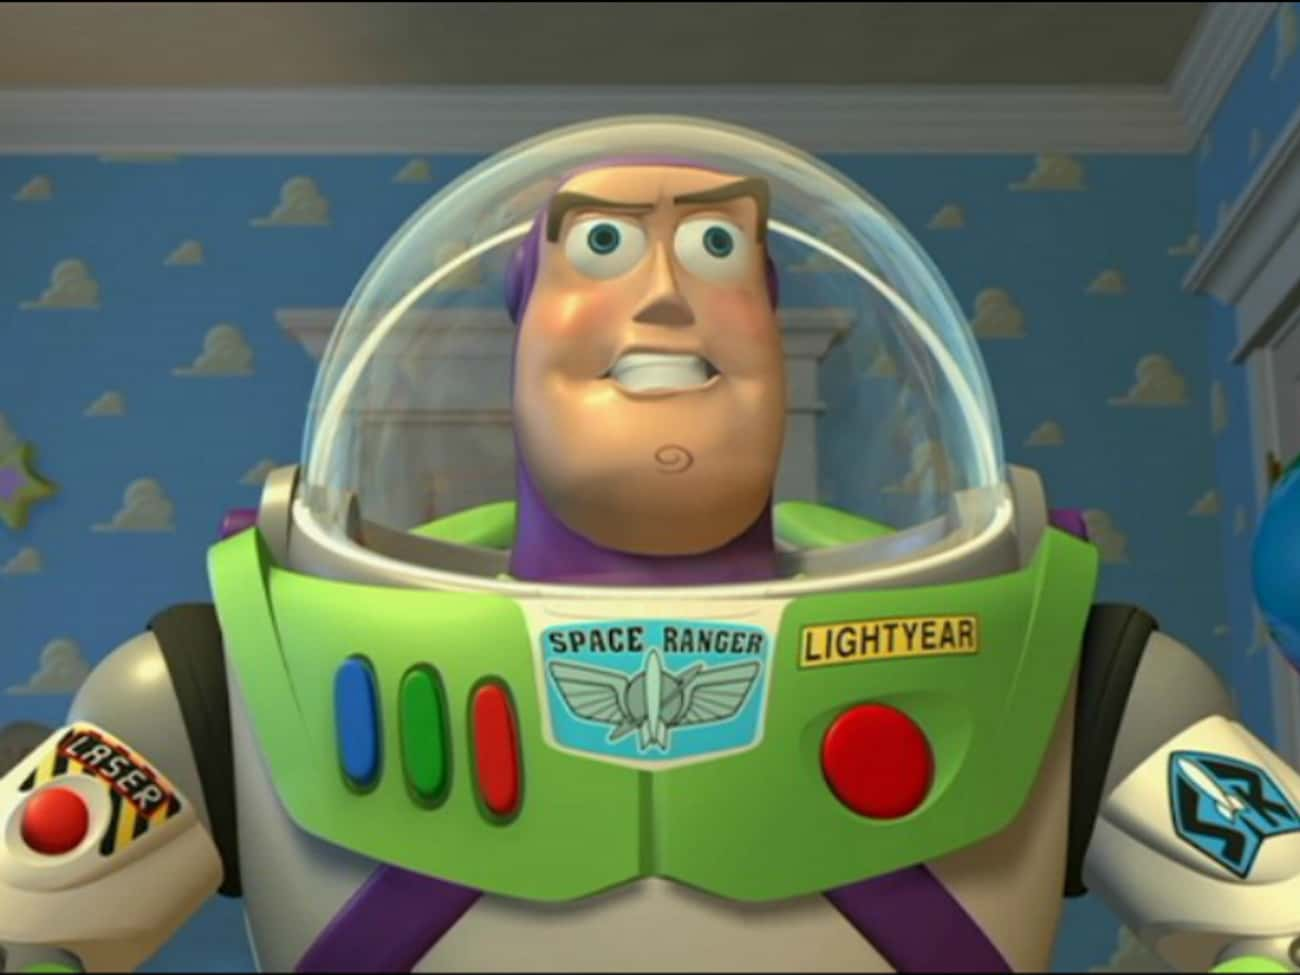 If Buzz Lightyear Doesn't Think He's a Toy, Why Does He Hit the Deck When Andy's Around?